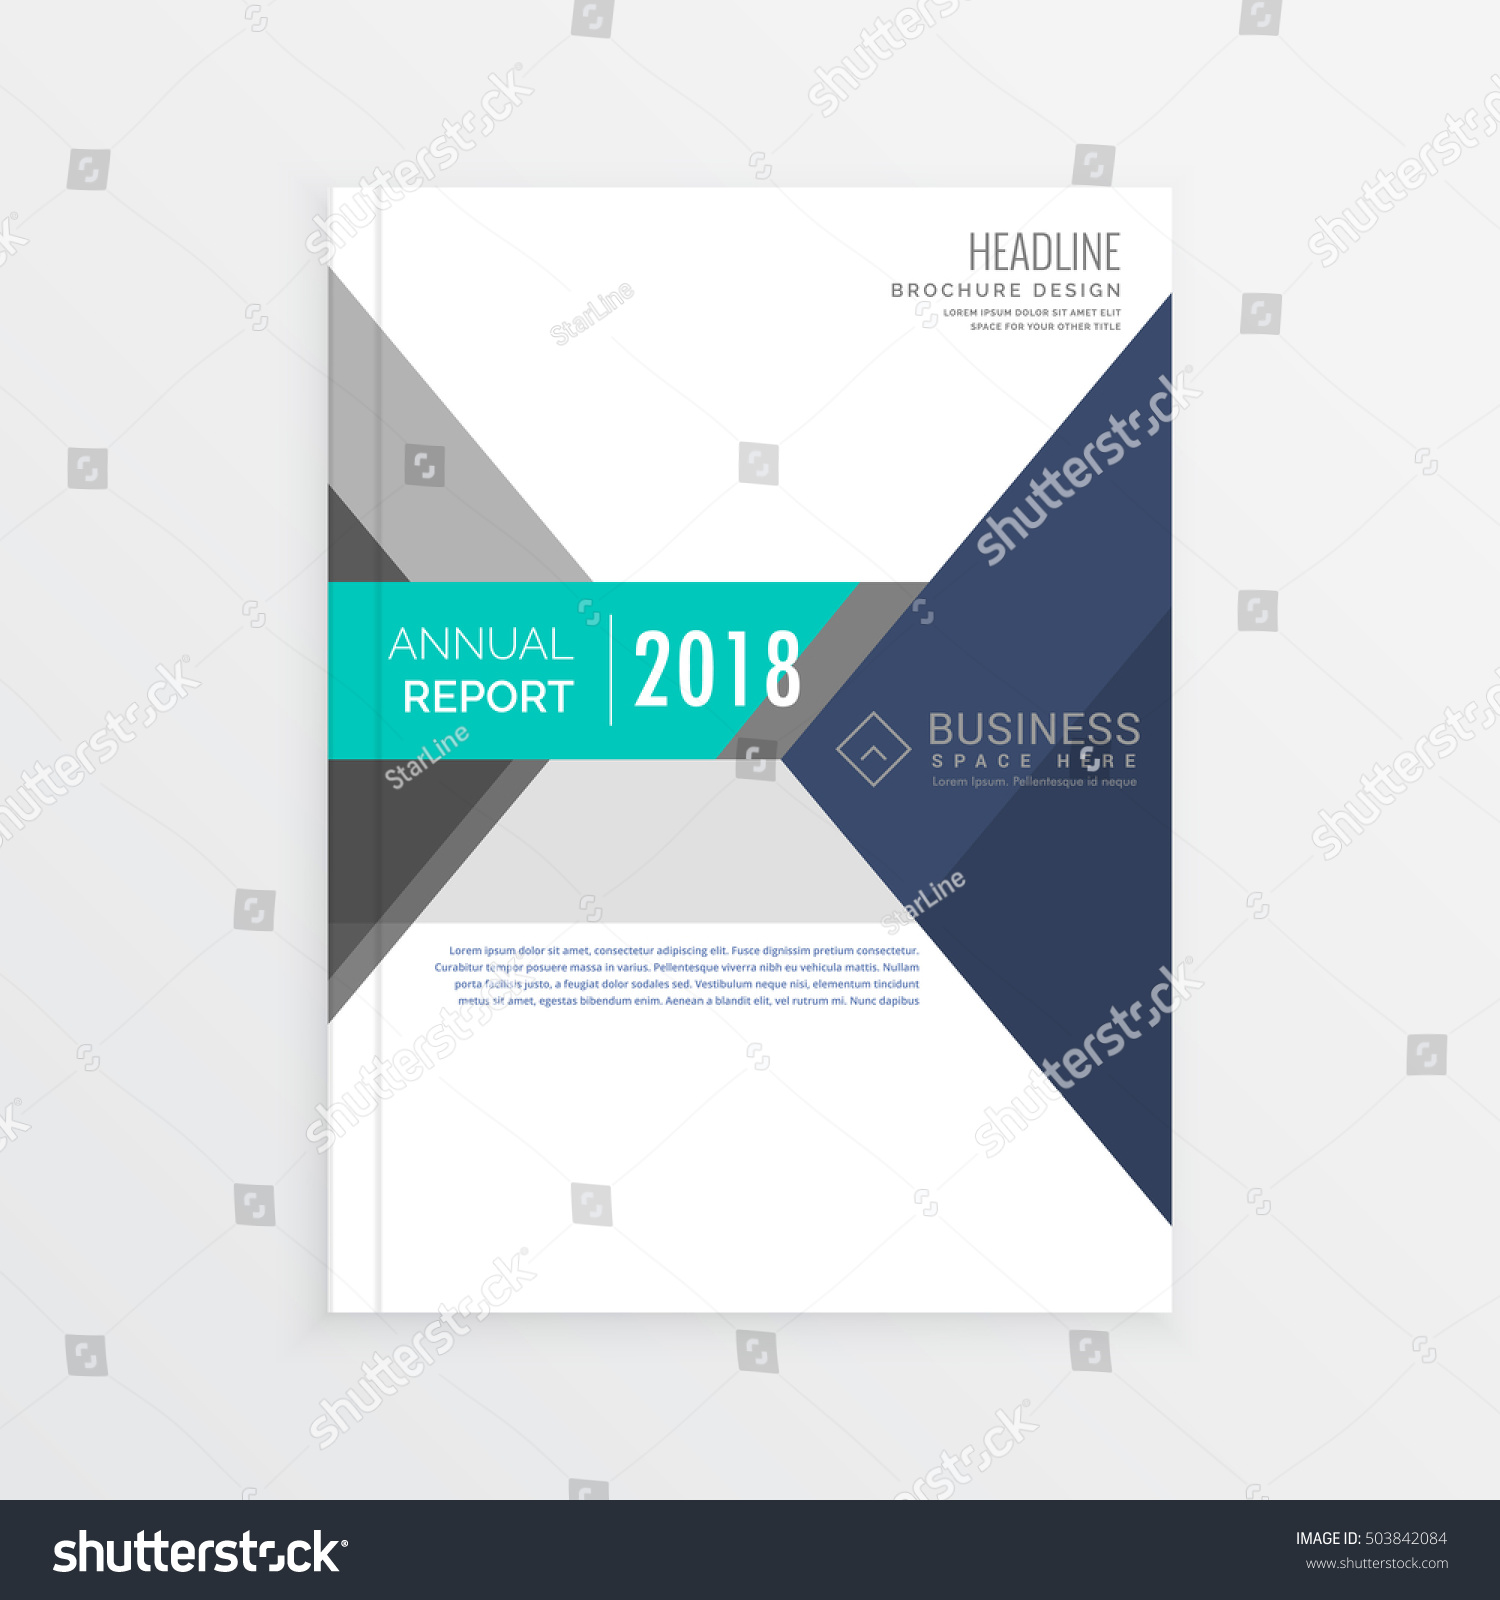 business brochure template design in geometric shapes annual business brochure template design in geometric shapes annual report cover page in a4 size